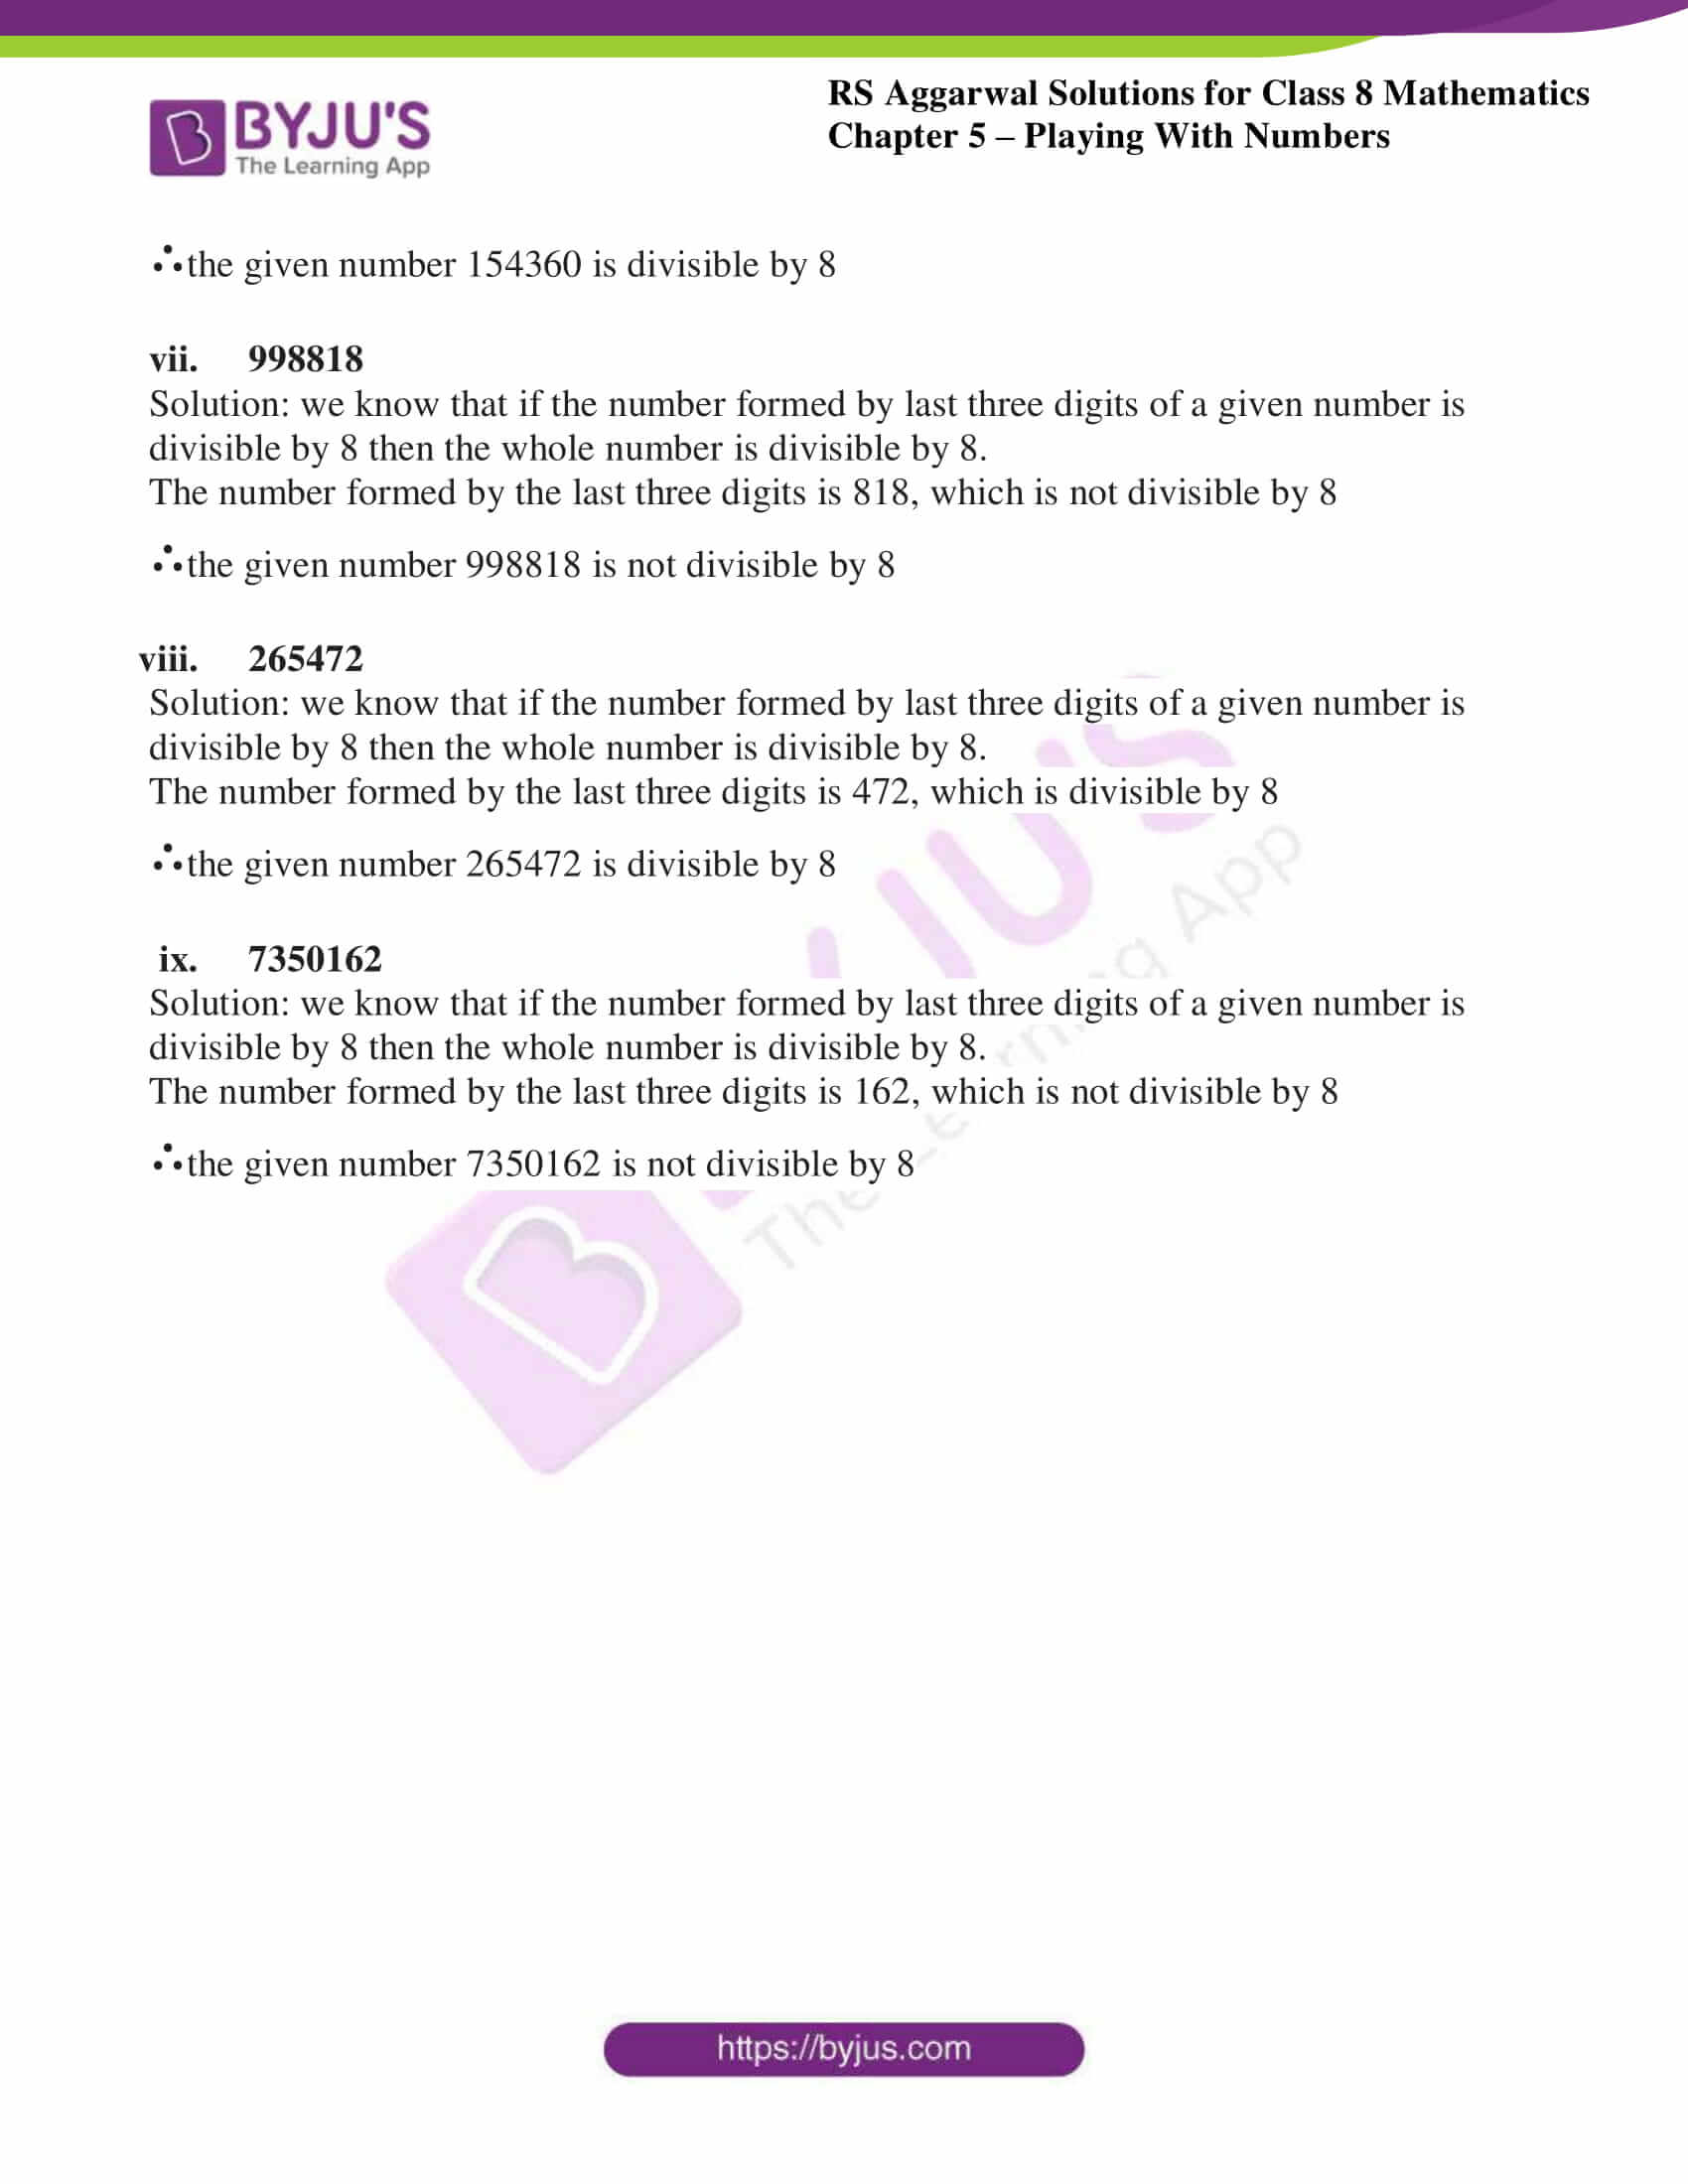 rs aggarwal solutions class 8 maths chapter 5b